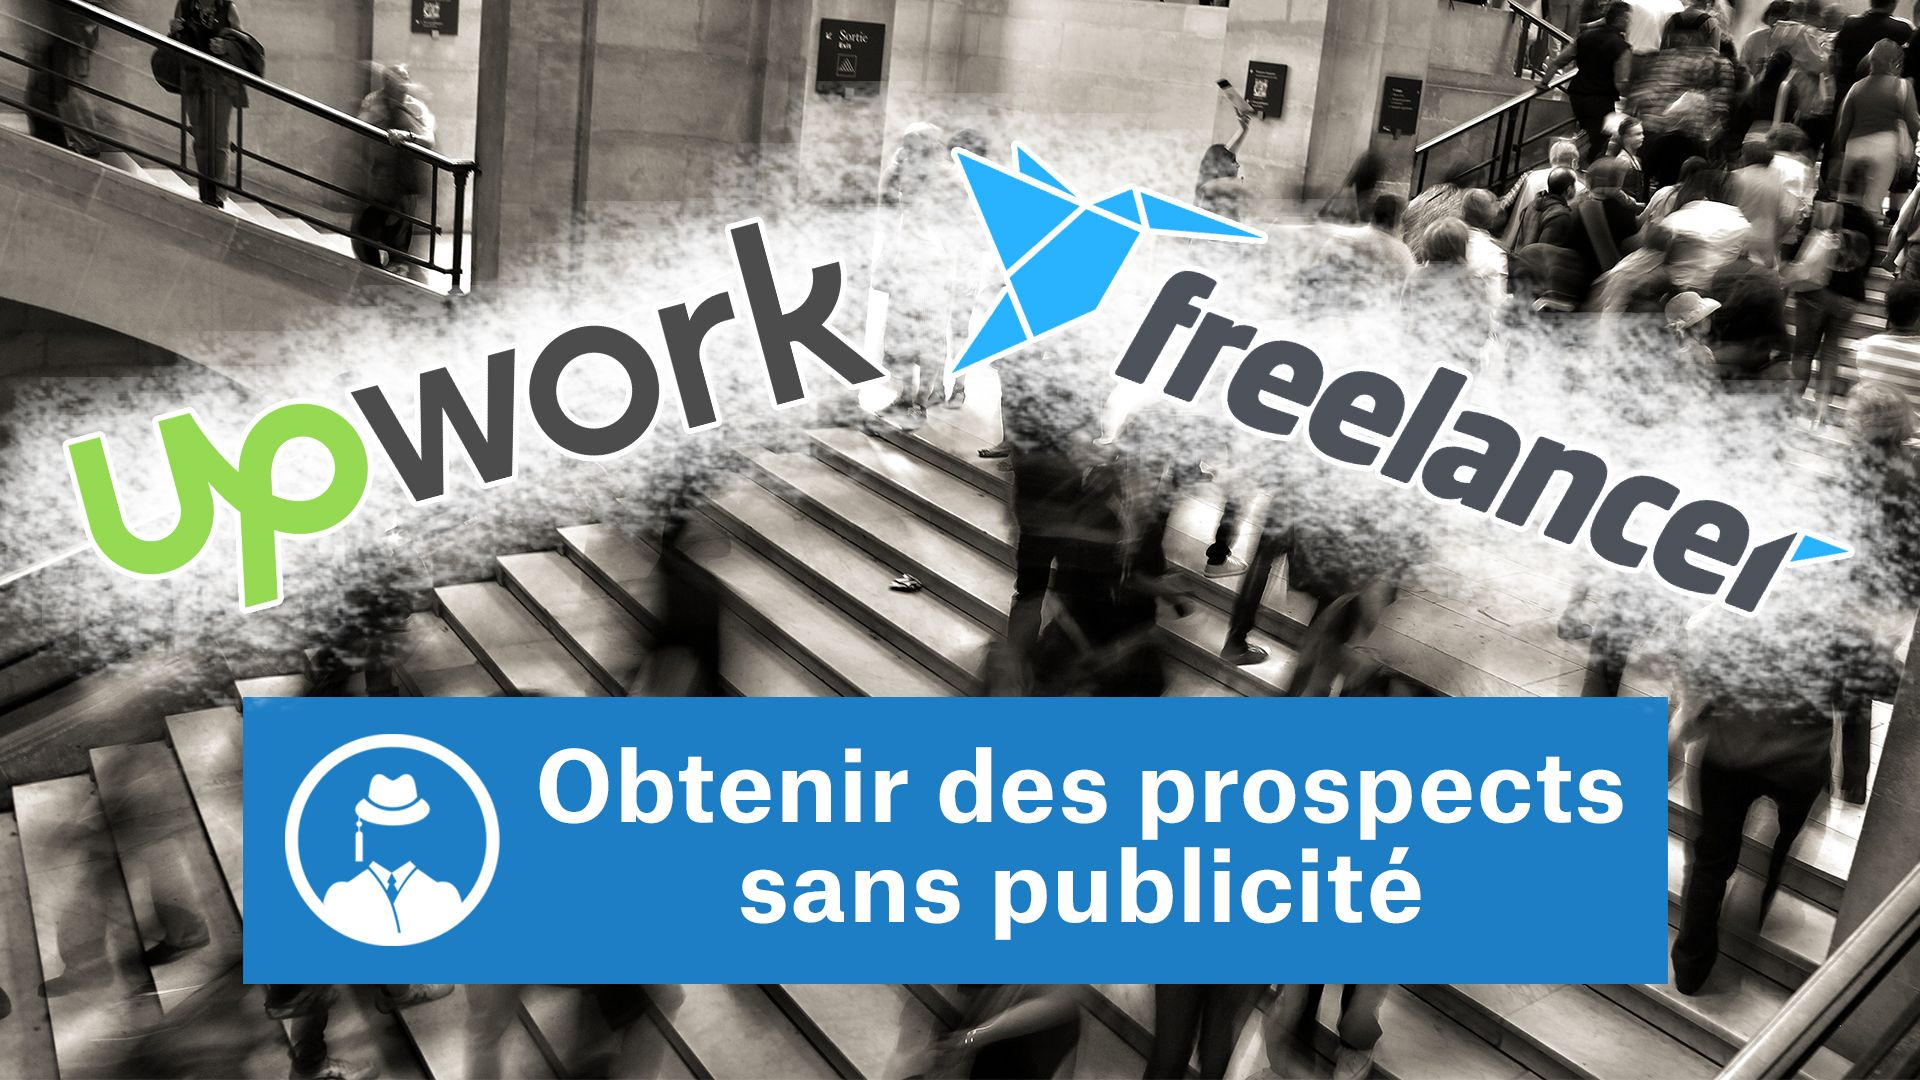 Obtenir des prospects sans publicité #GrowthHacking #WebMarketing #FormationGrowthHacking #CentreDeFormationFrance #TunnelAARRR #AARRR #SocialMedia #CommunityManagement #SEO #MarketingDigital #SiteWeb #leads